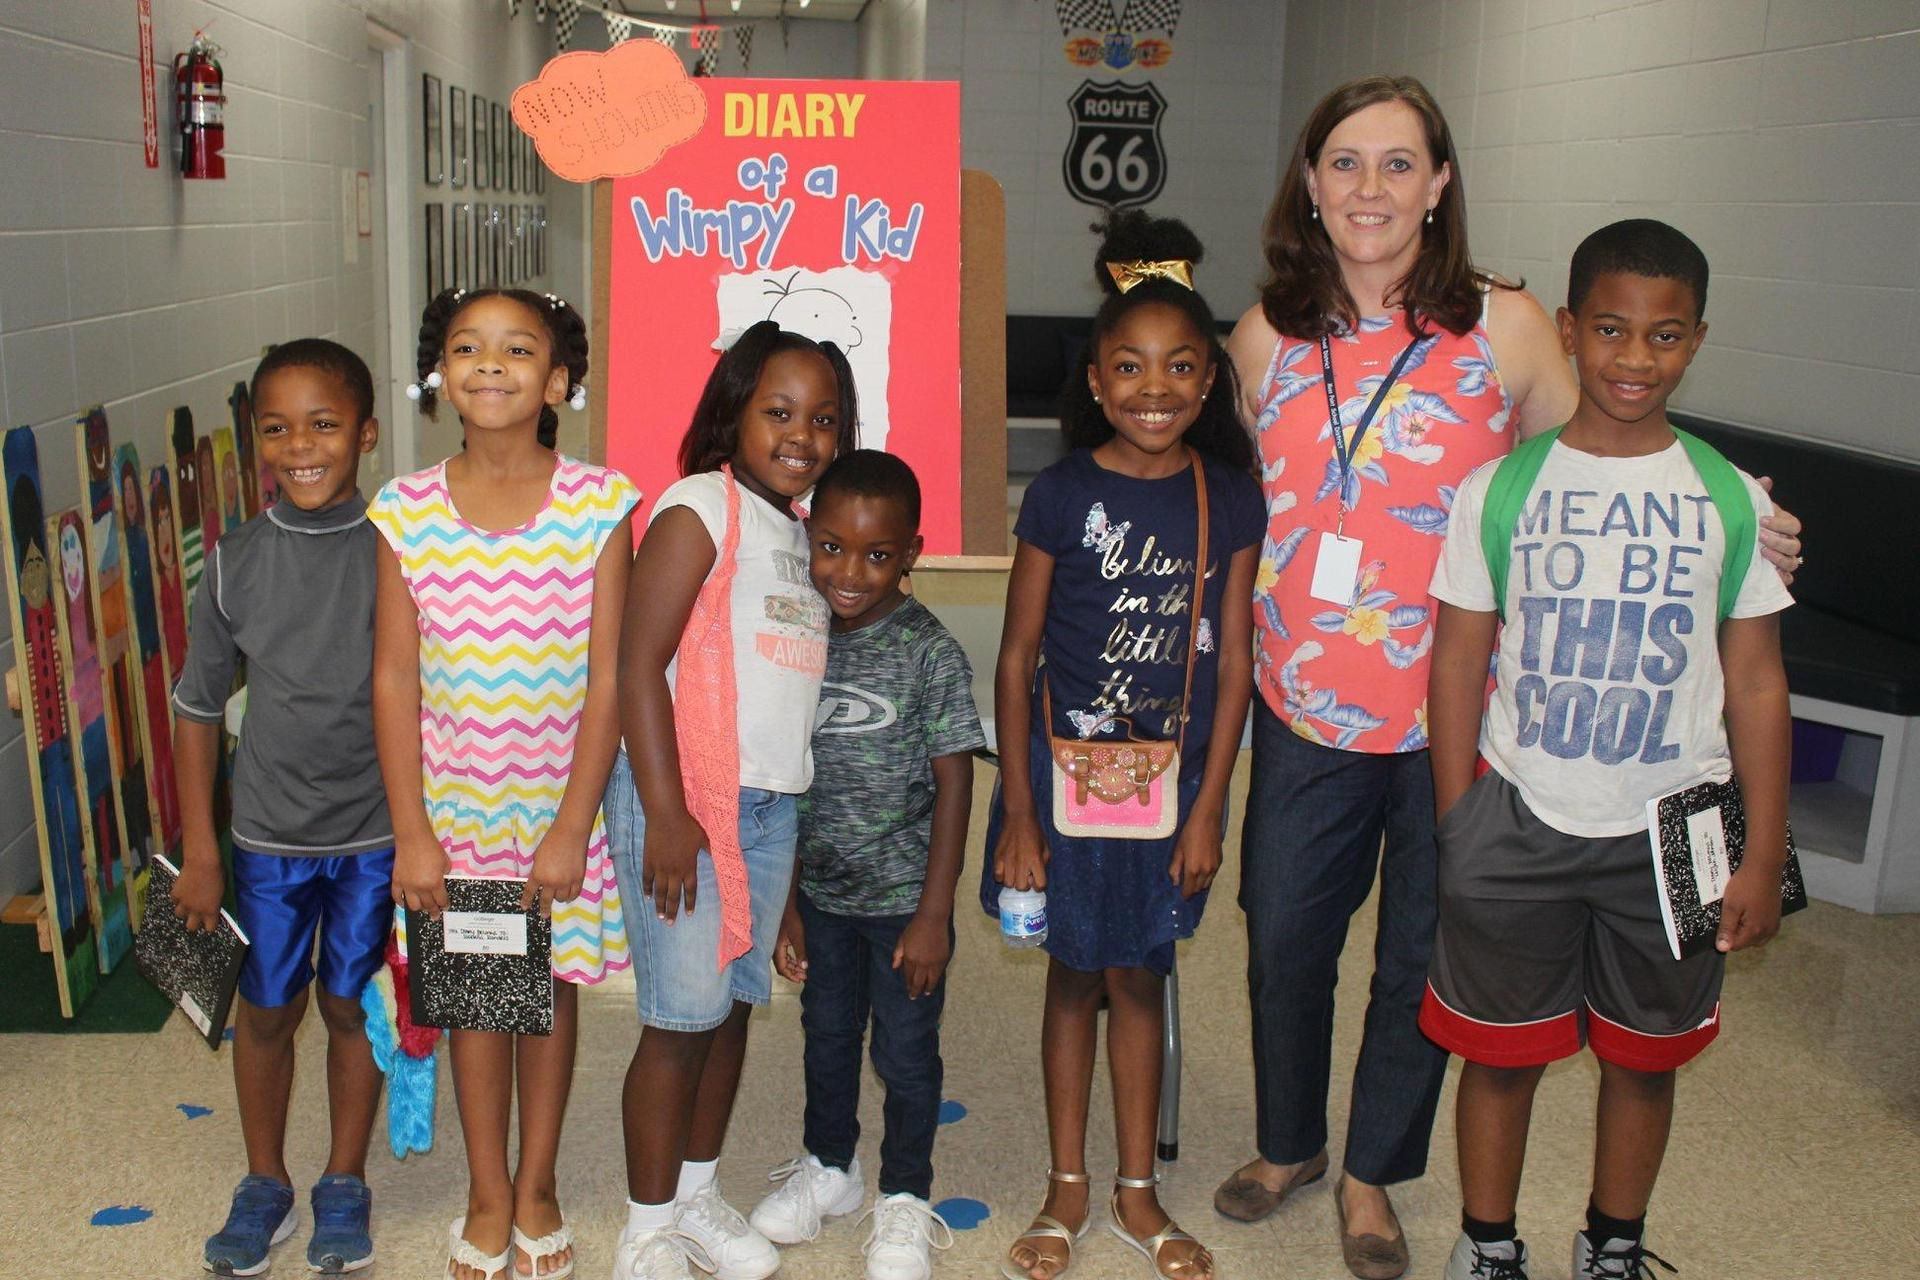 P-16 Community Engagement Council Diary of a Wimpy Kid Photos